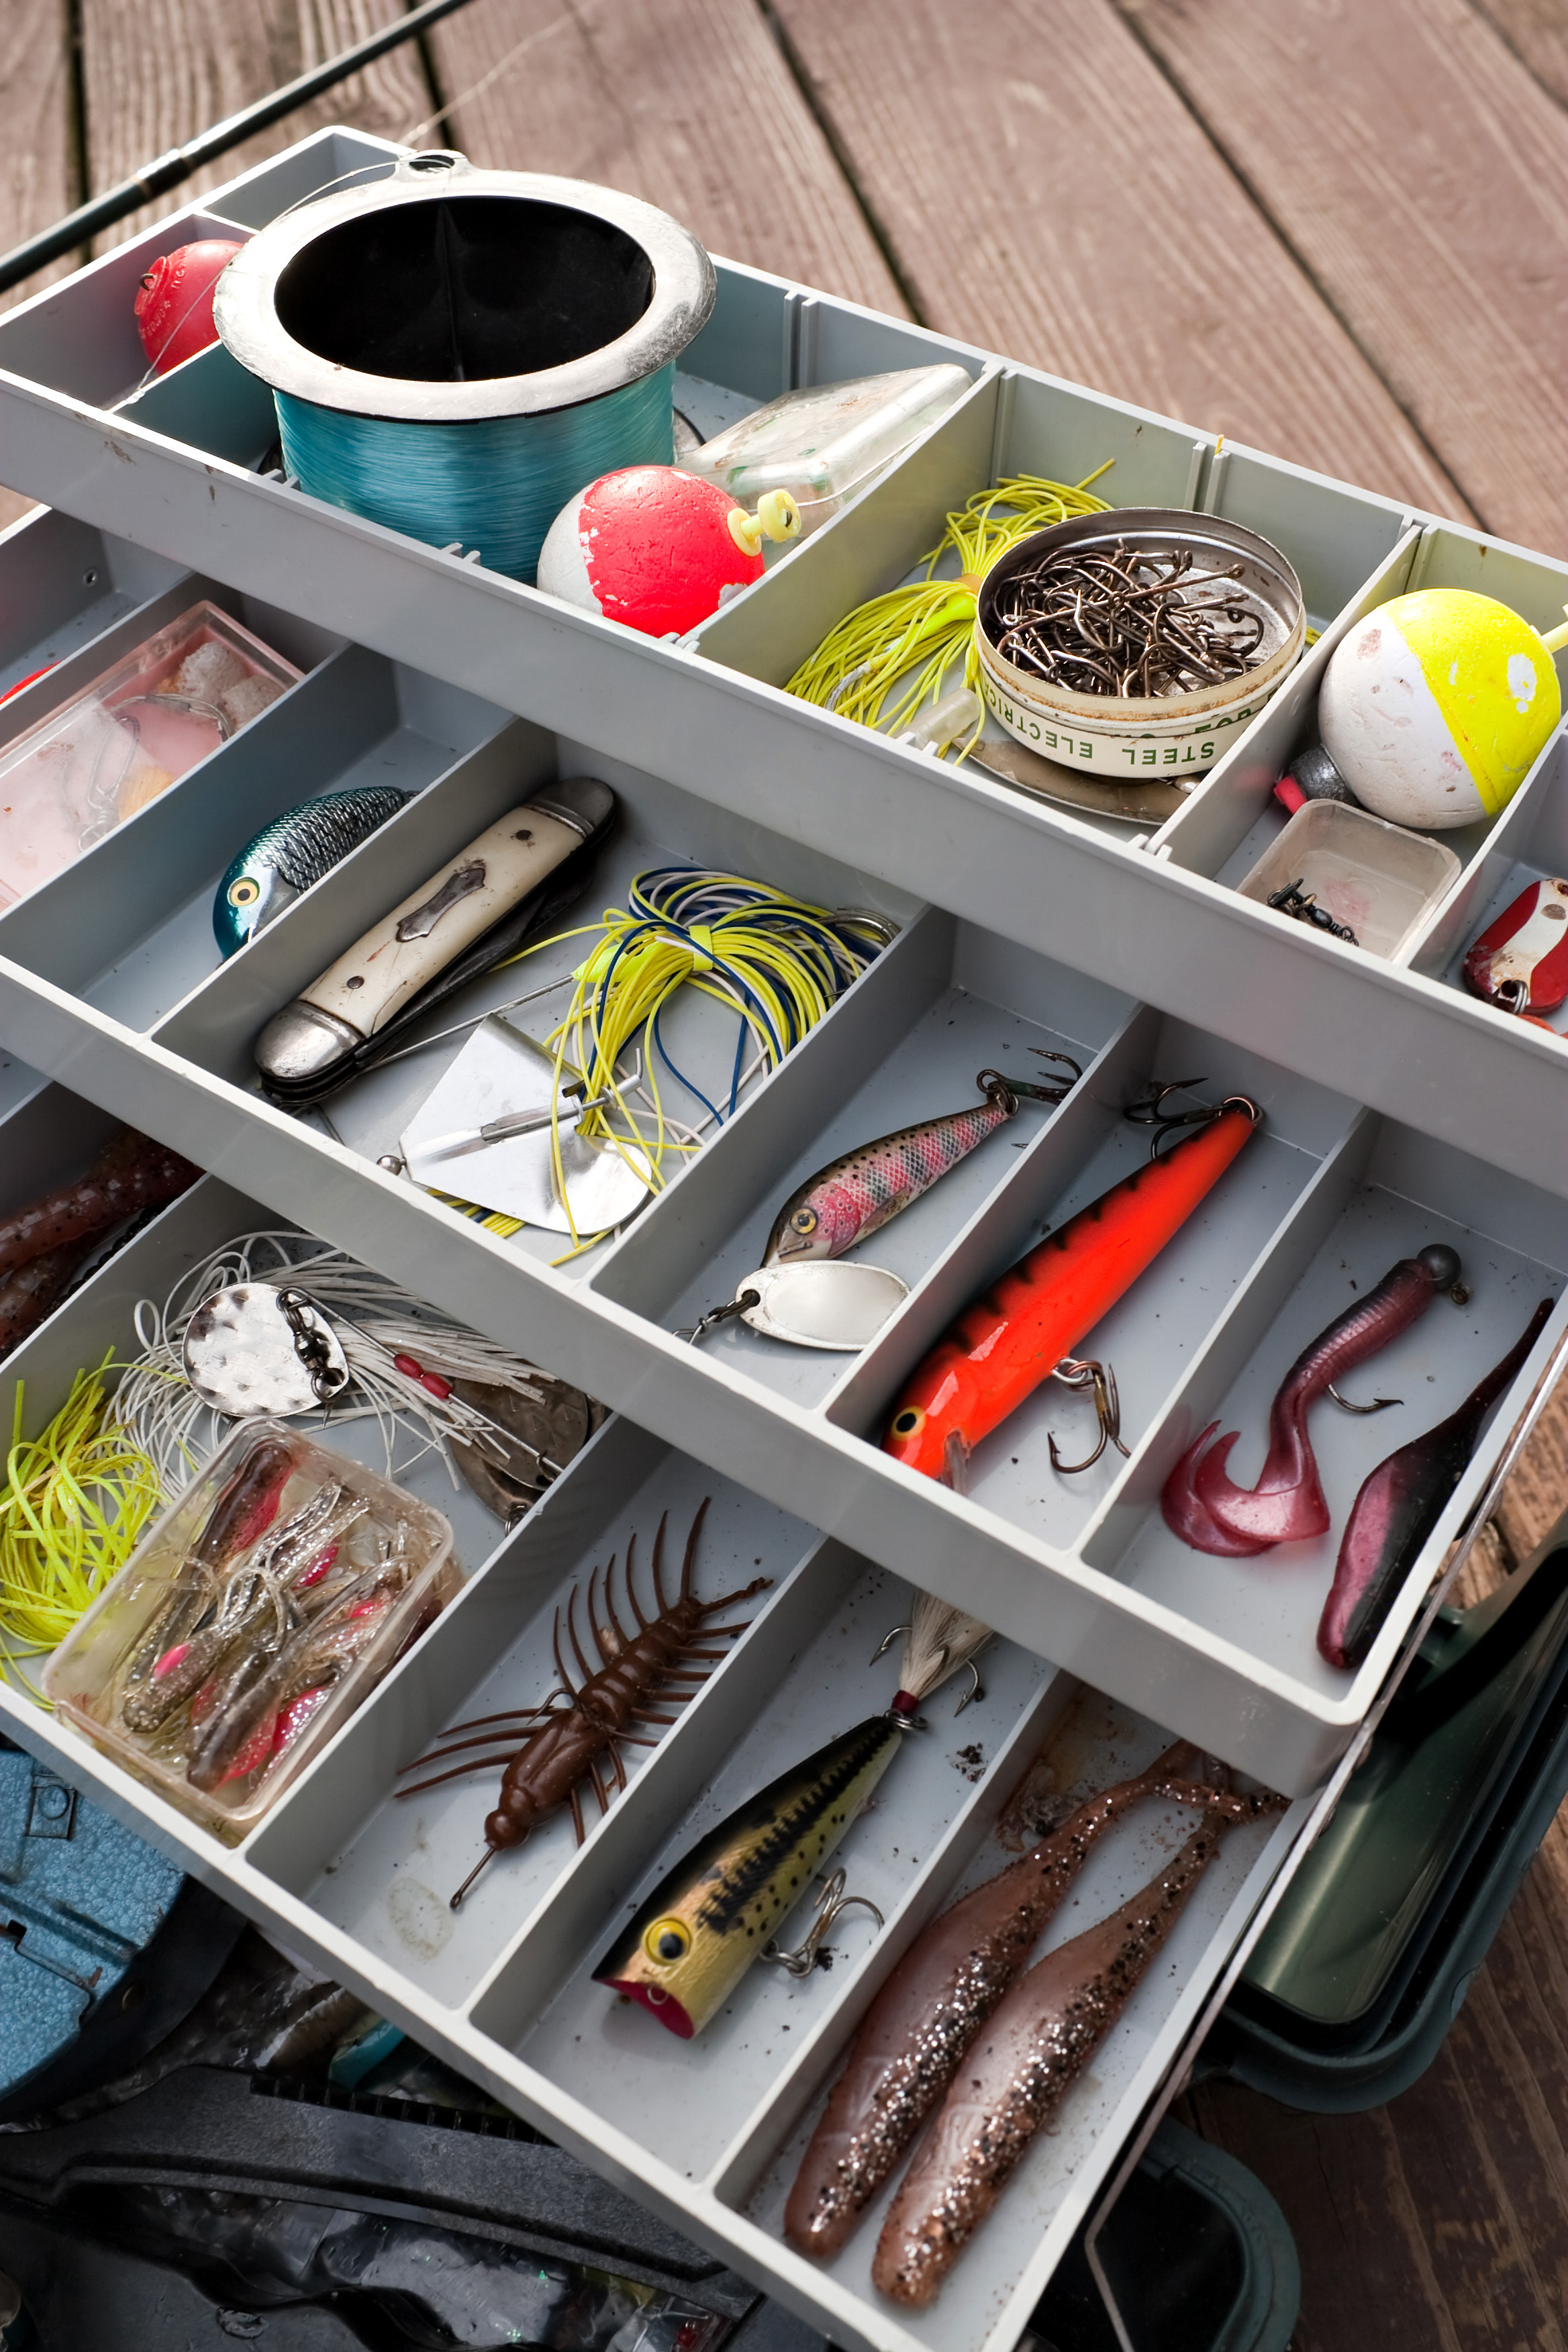 Outdoor news and clam name monticello teen december 2015 for Monthly fishing box